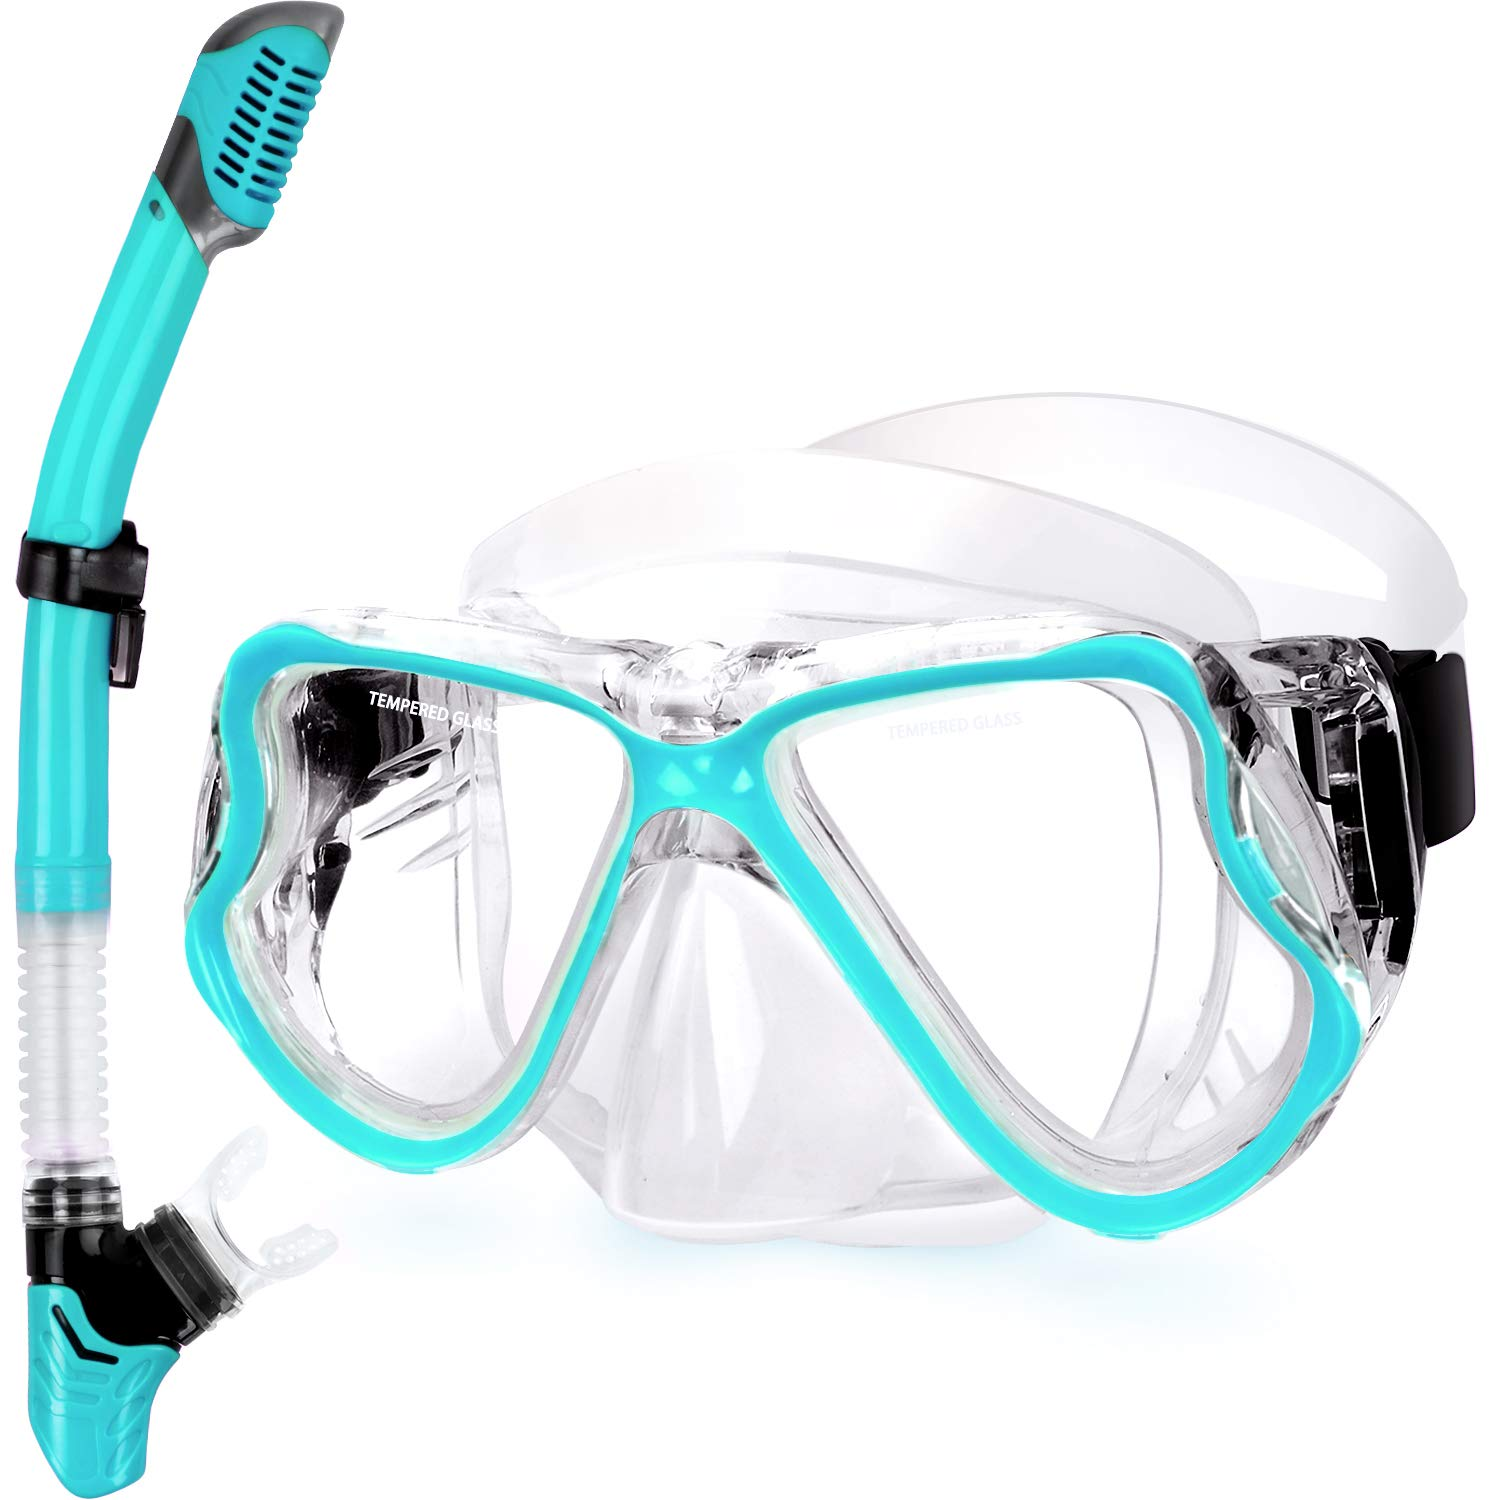 Greatever 2019 Newest Dry Snorkel Set,Panoramic Wide View,Anti-Fog Scuba Diving Mask,Easy Breathing and Professional Snorkeling Gear for Adults by Greatever